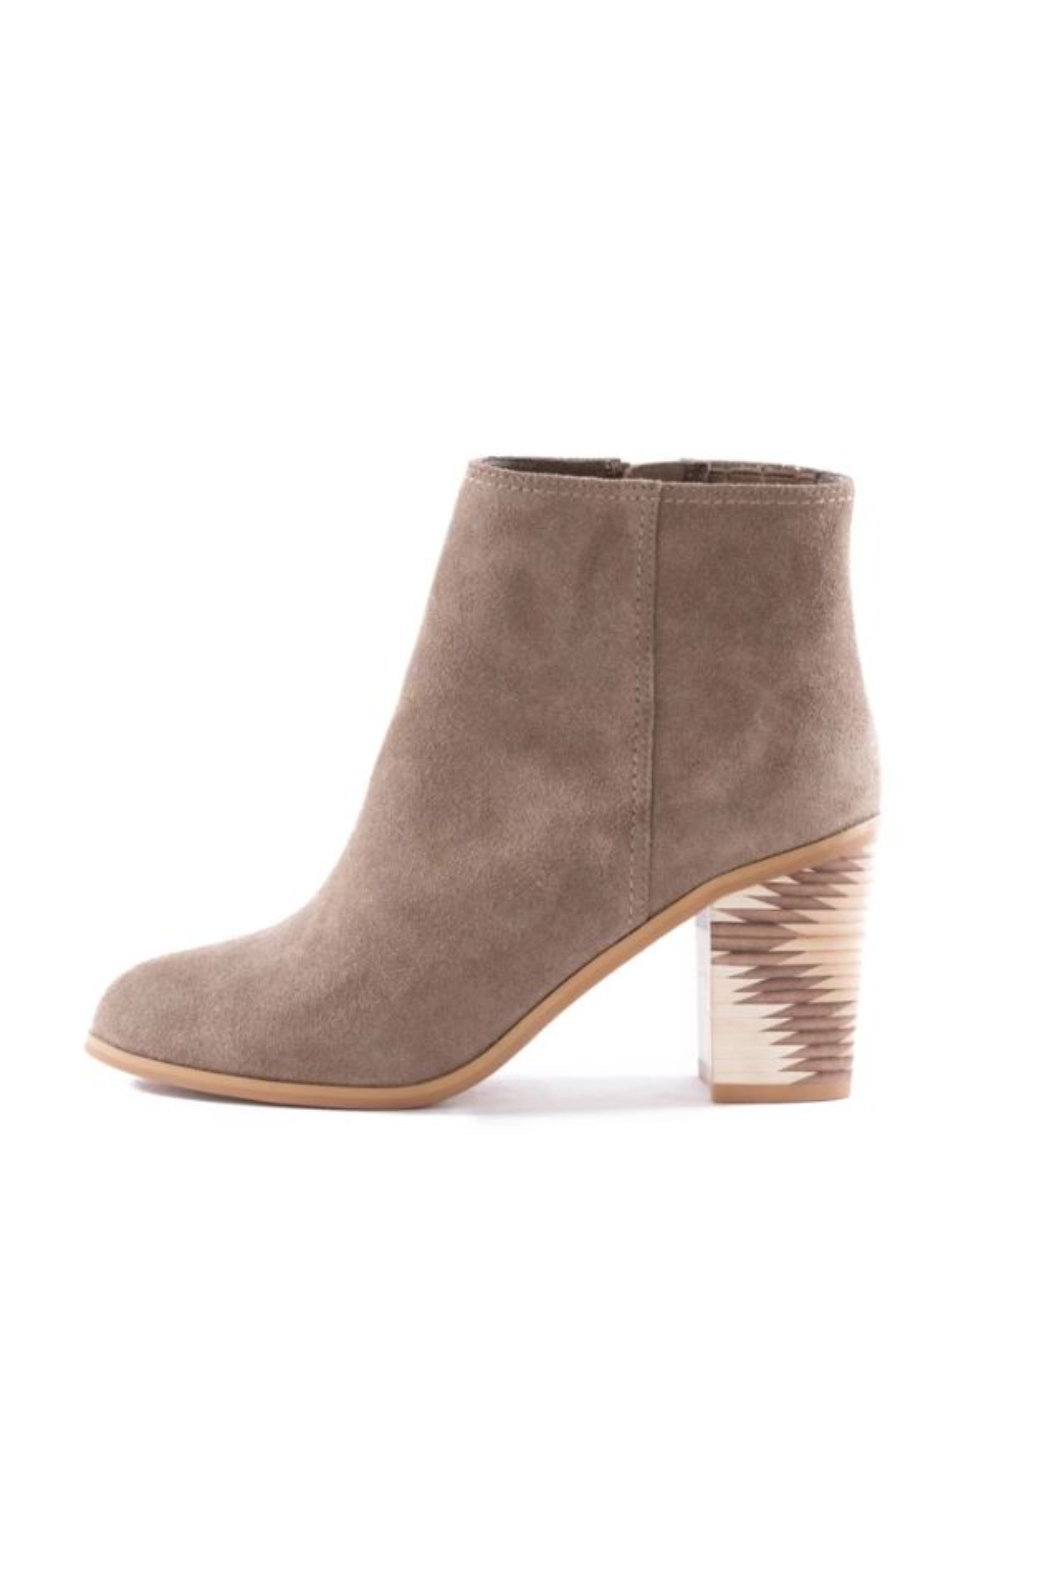 Seychelles Grand Finale Ankle Boot - Front Full Image